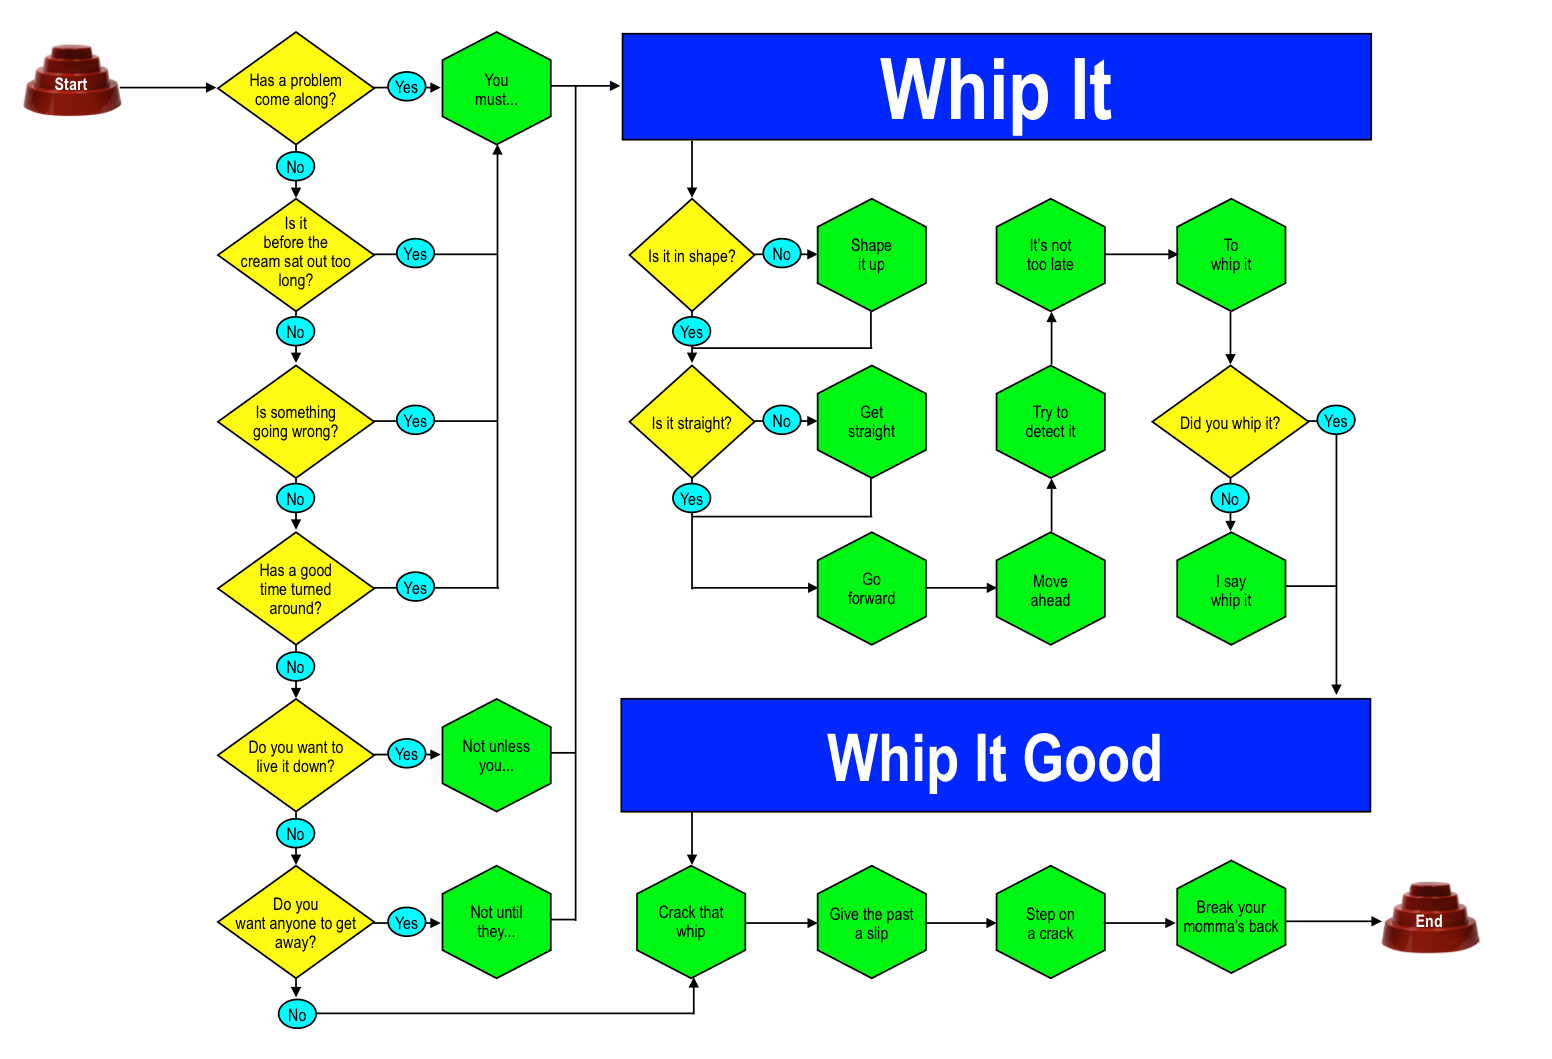 whip it flow chart.png